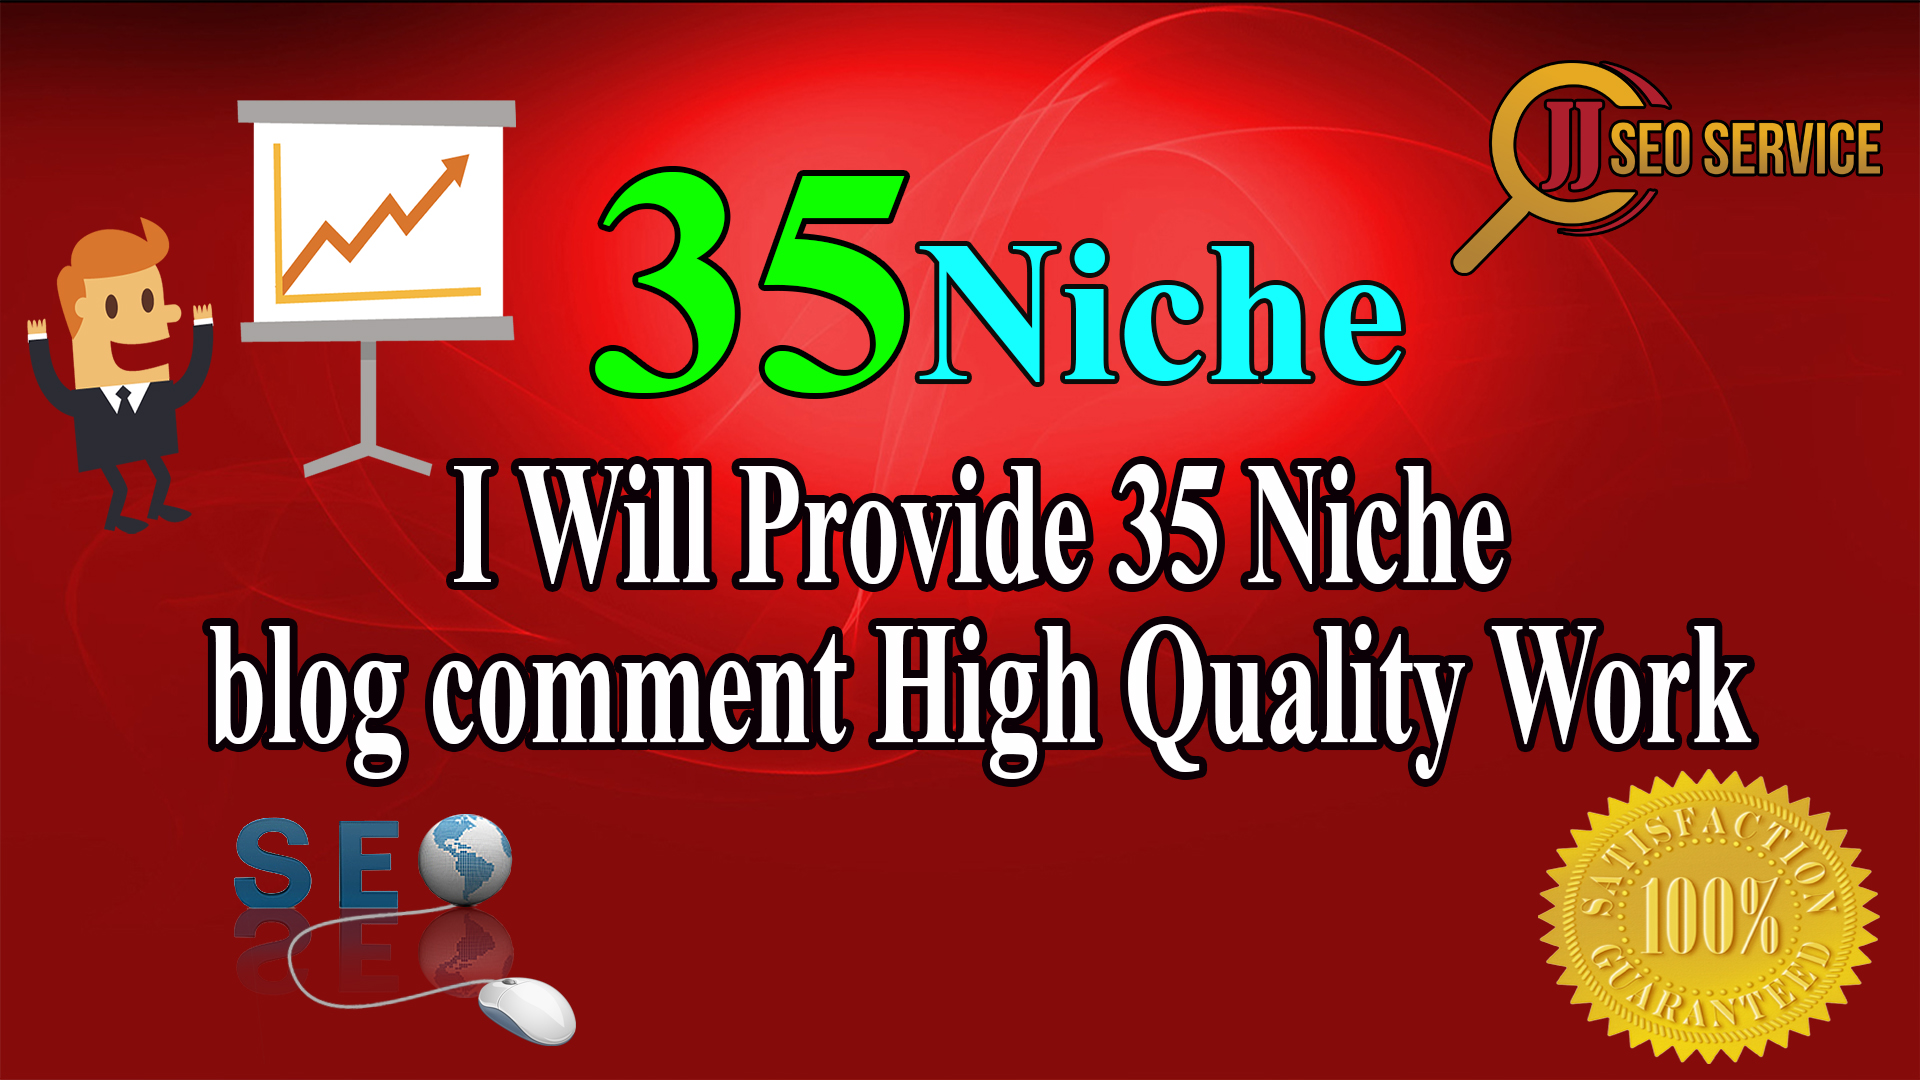 I Will Do 35 Niche Relevant Blog Comment Service. We Work Hard For Your Success. The Order Now Button For Manual Blog Commenting Service For High PR.